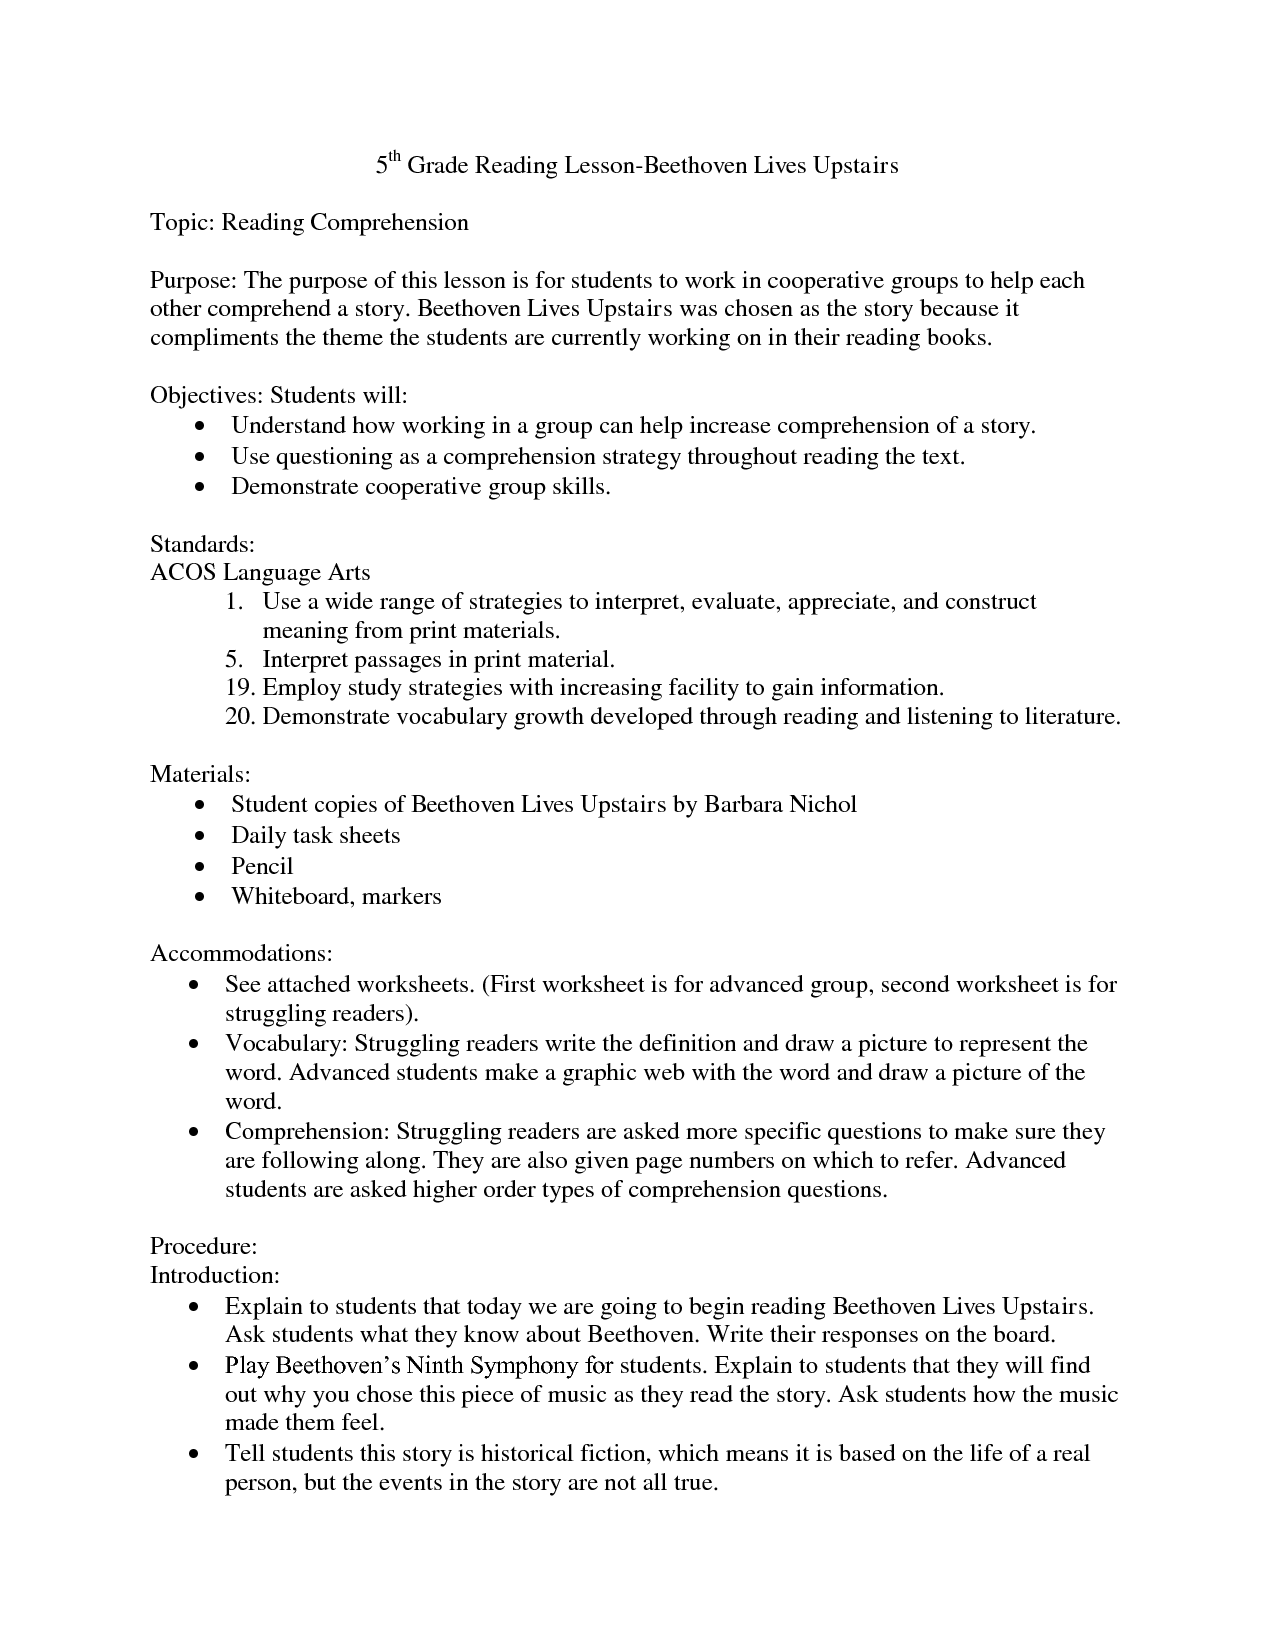 Worksheet Grade 3 Reading Comprehension Worksheet 7 best images of printable reading comprehension worksheets free 5th grade worksheets